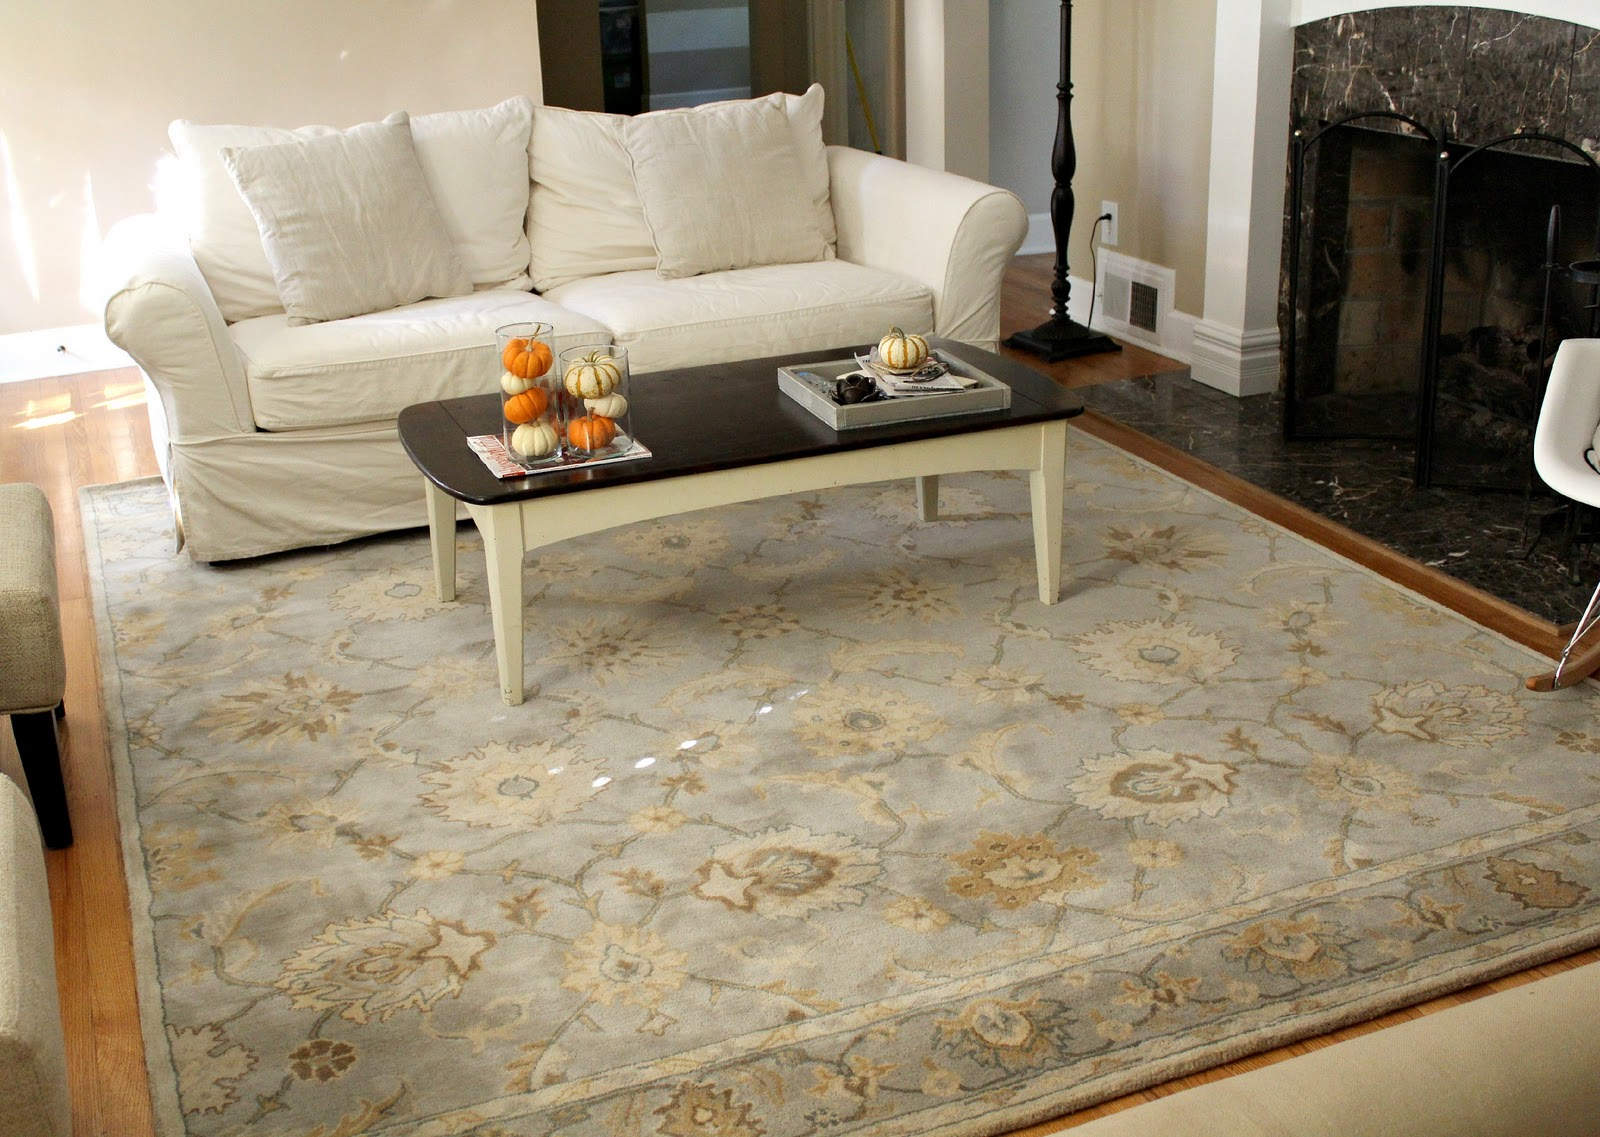 Choosing best rugs for living room  Interior design ideas